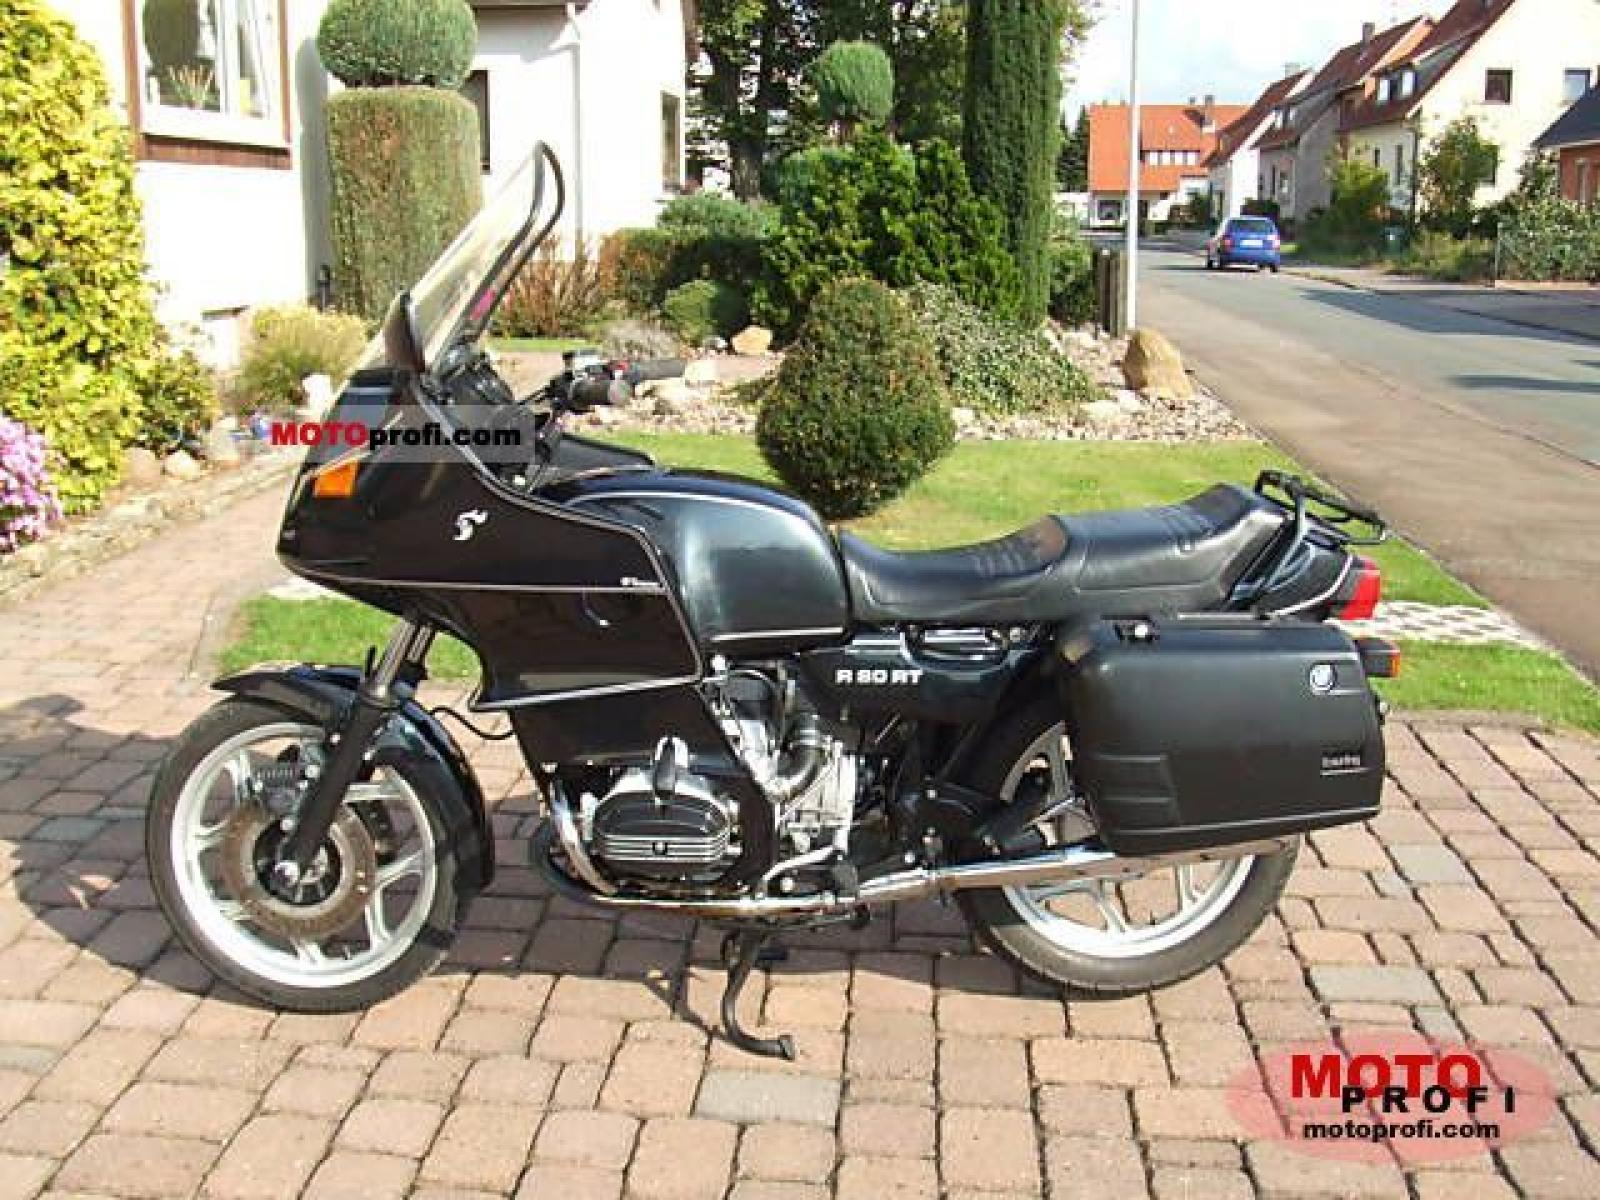 BMW R45 (reduced effect) 1978 images #4253